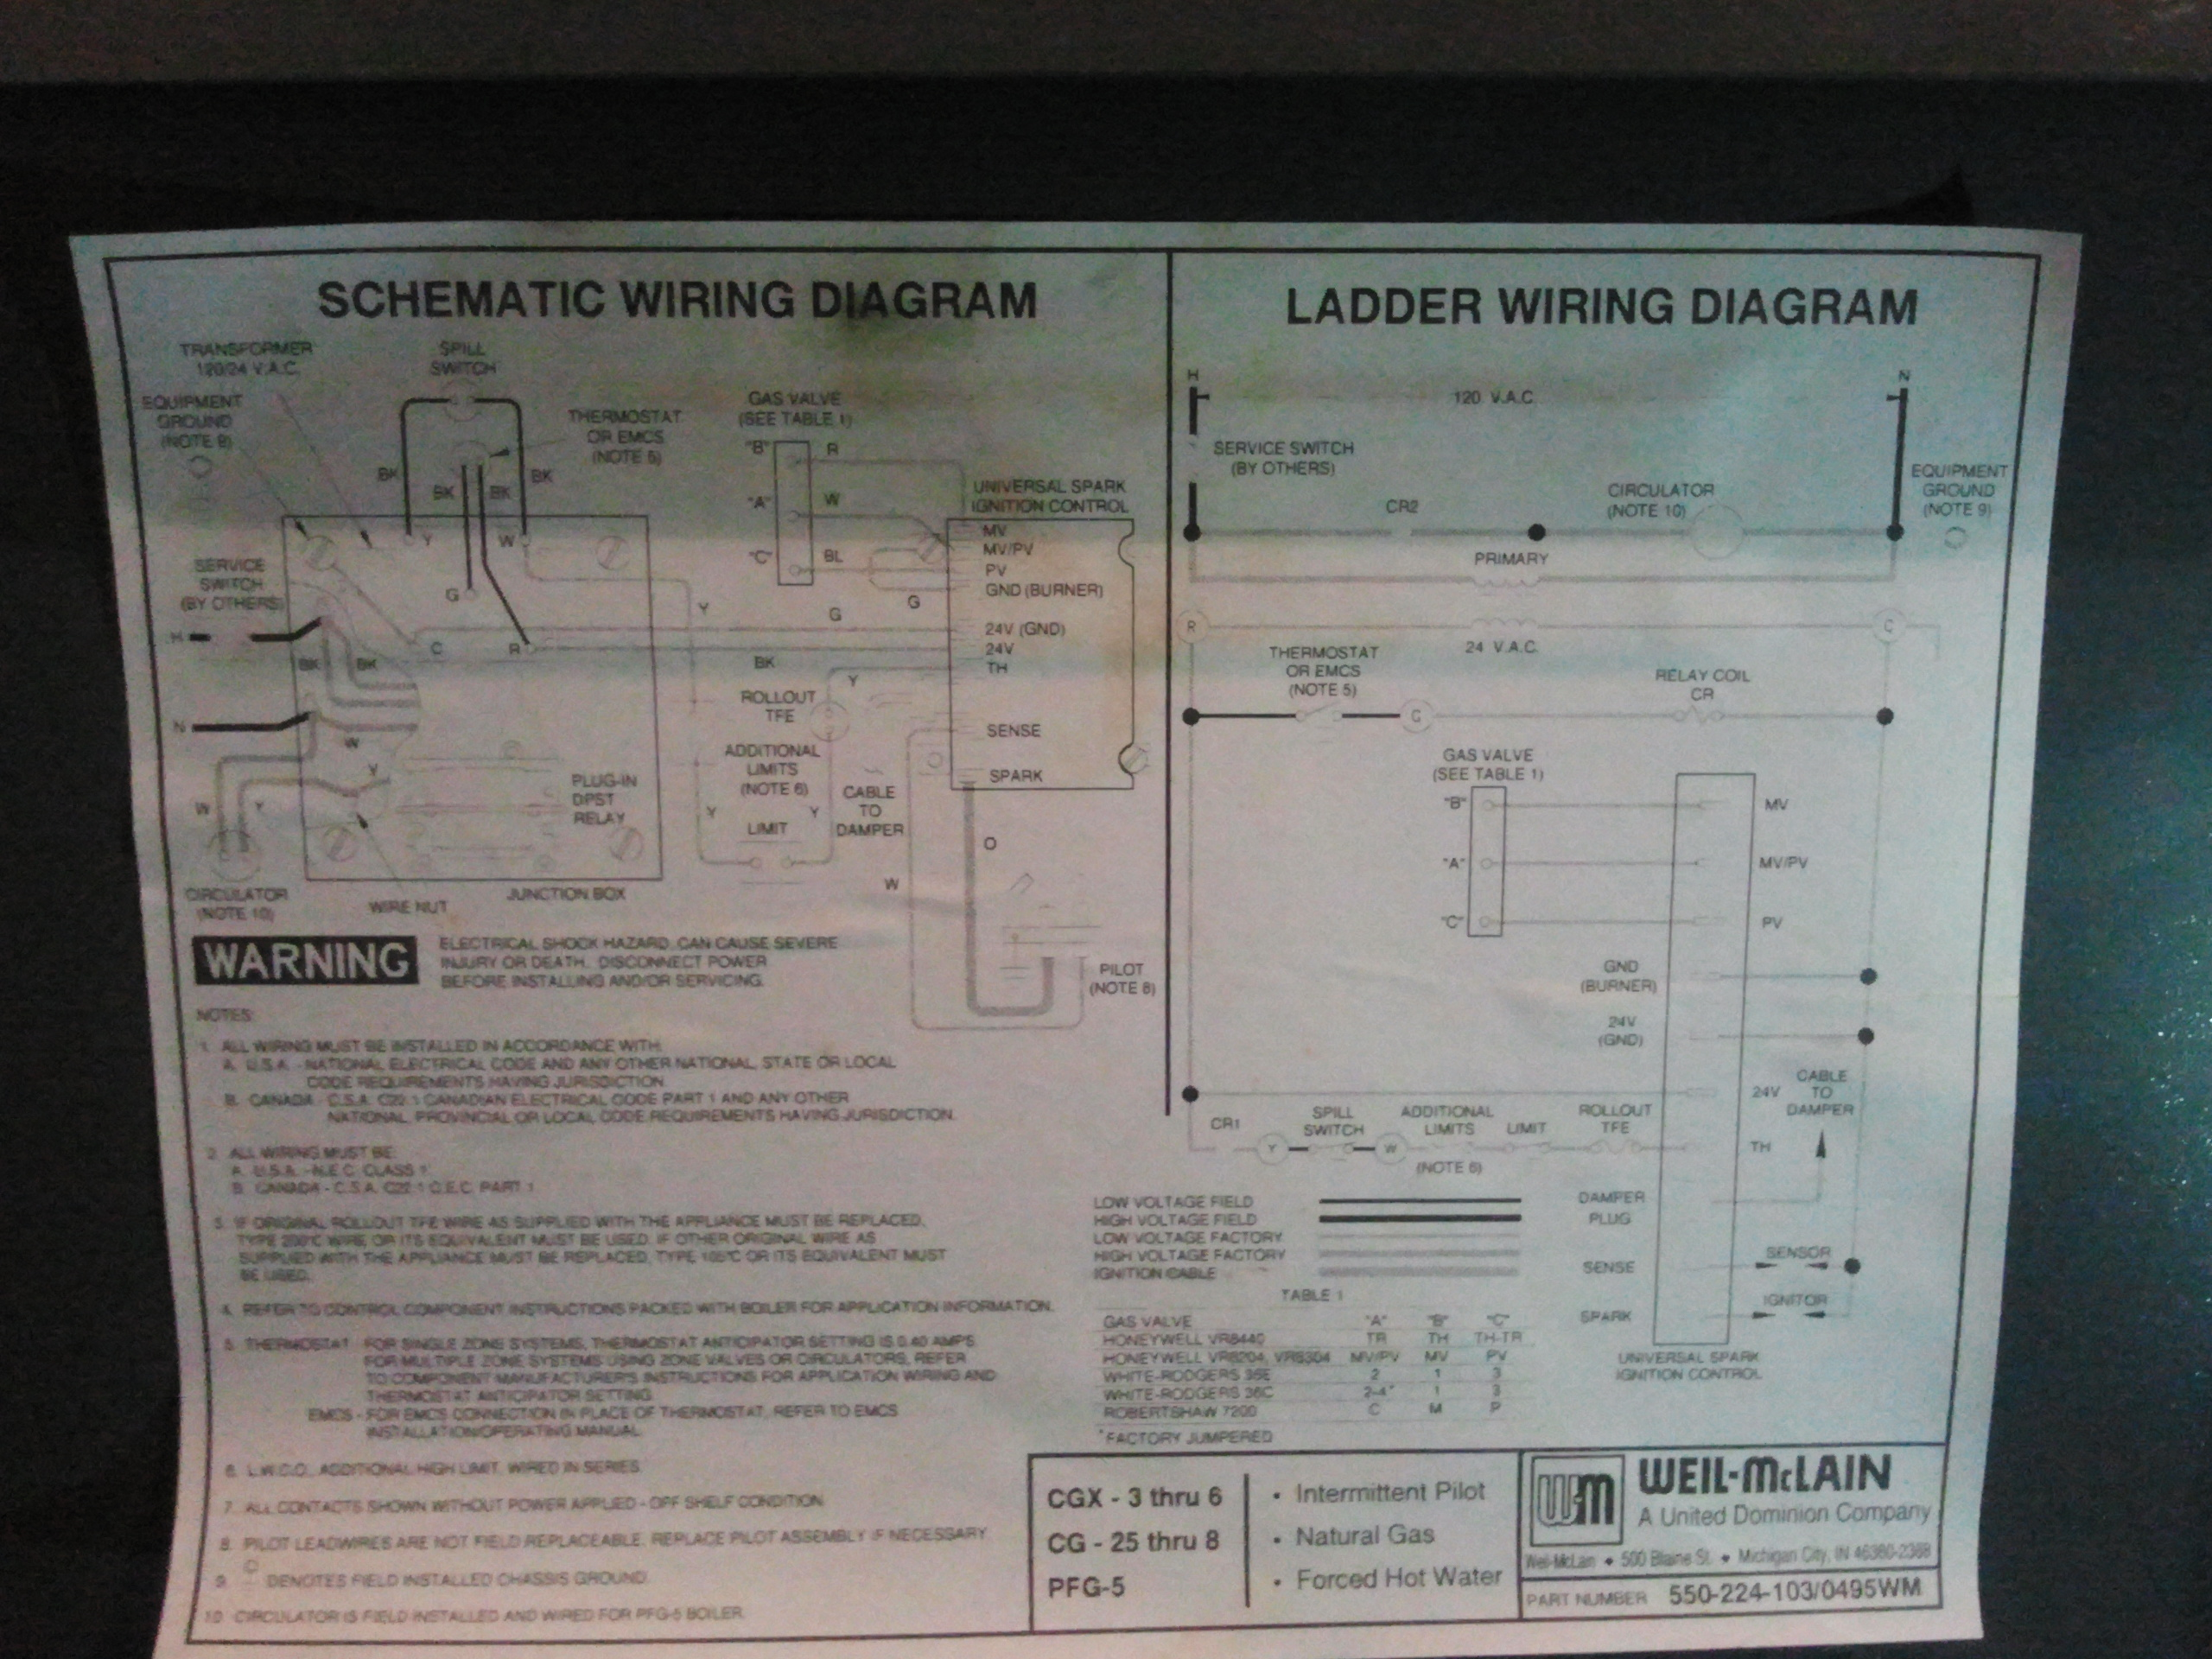 2013 01 11_234321_2013 01 09_10.12.39 i have a weil mclain gas furnace that i installed in 1991 a automatic vent damper wiring diagram at readyjetset.co